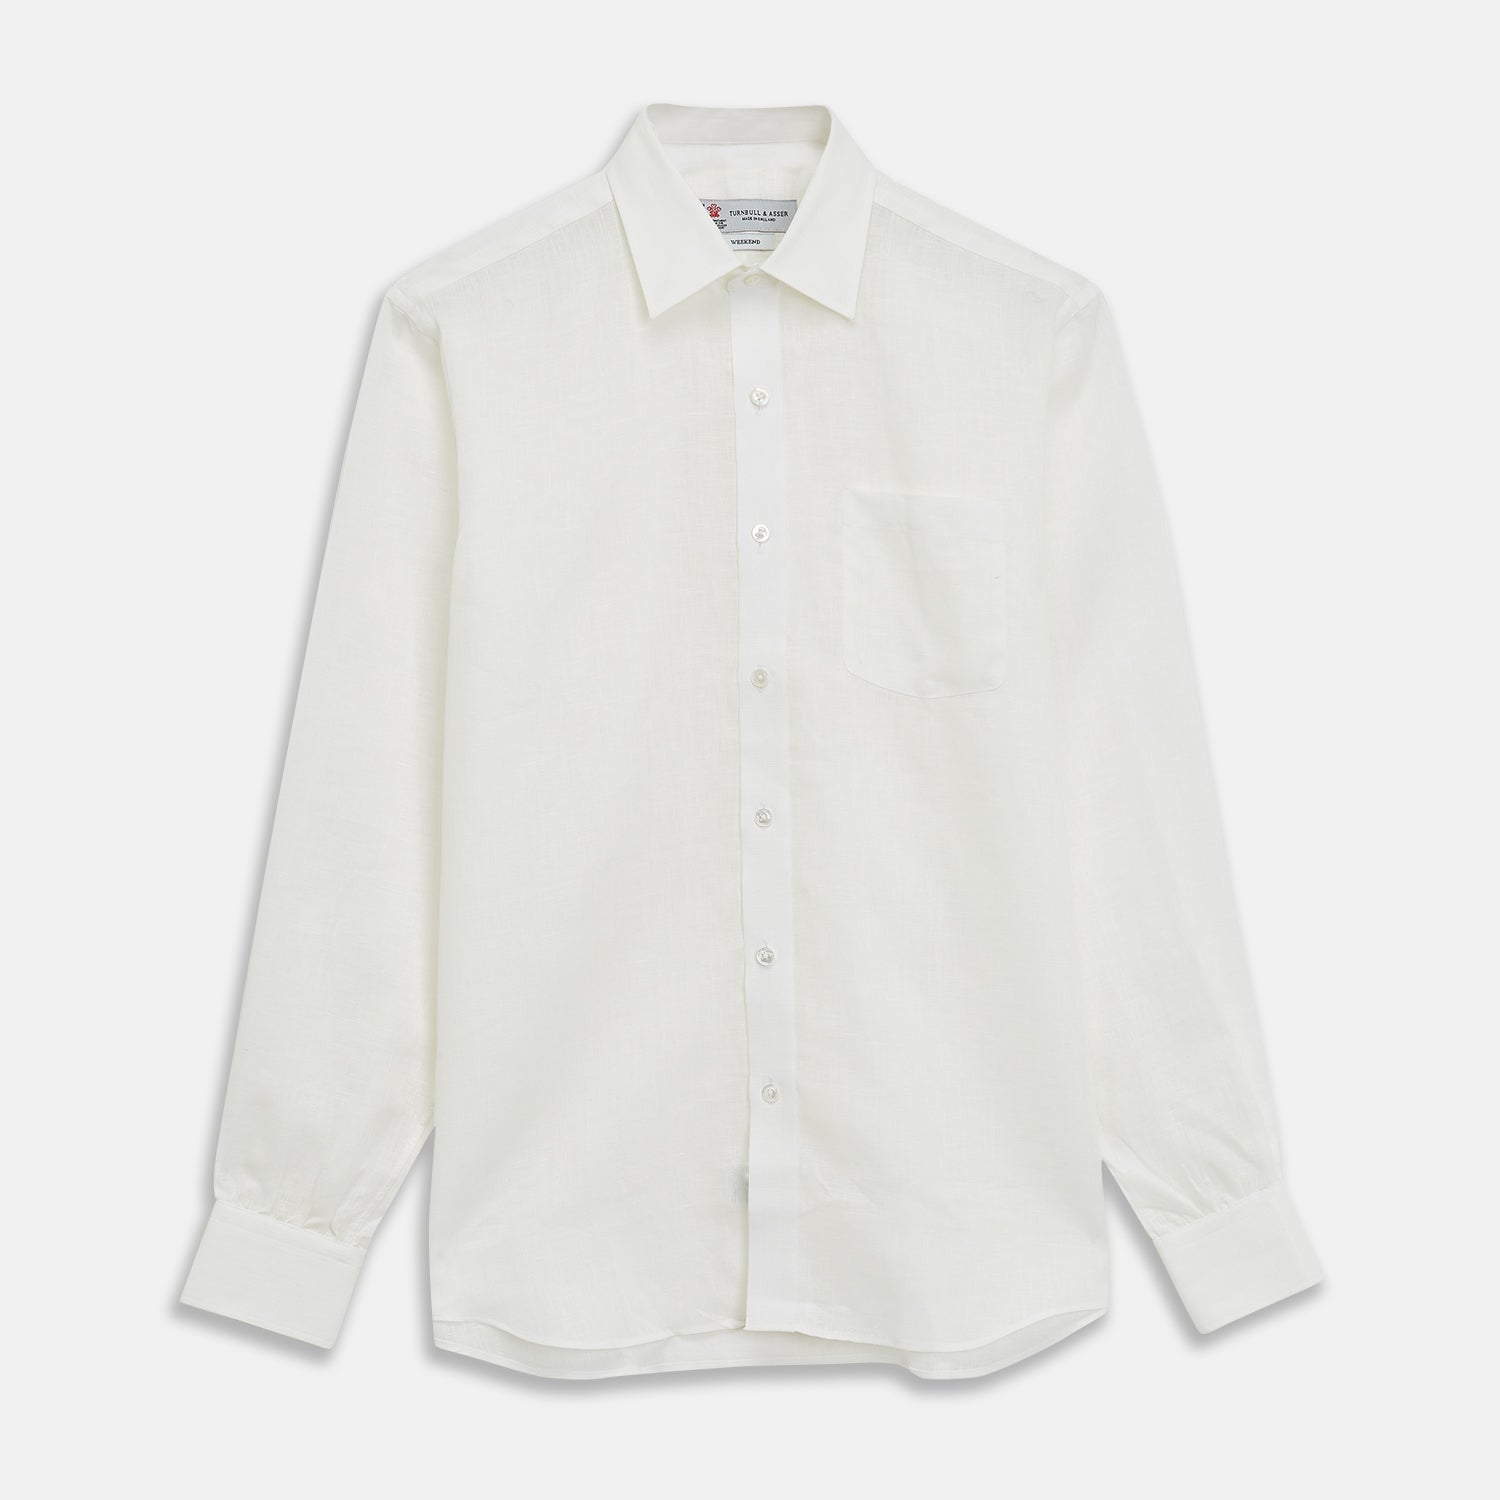 Cream Linen Weekend Fit Shirt with Derby Collar and 1-Button Cuffs